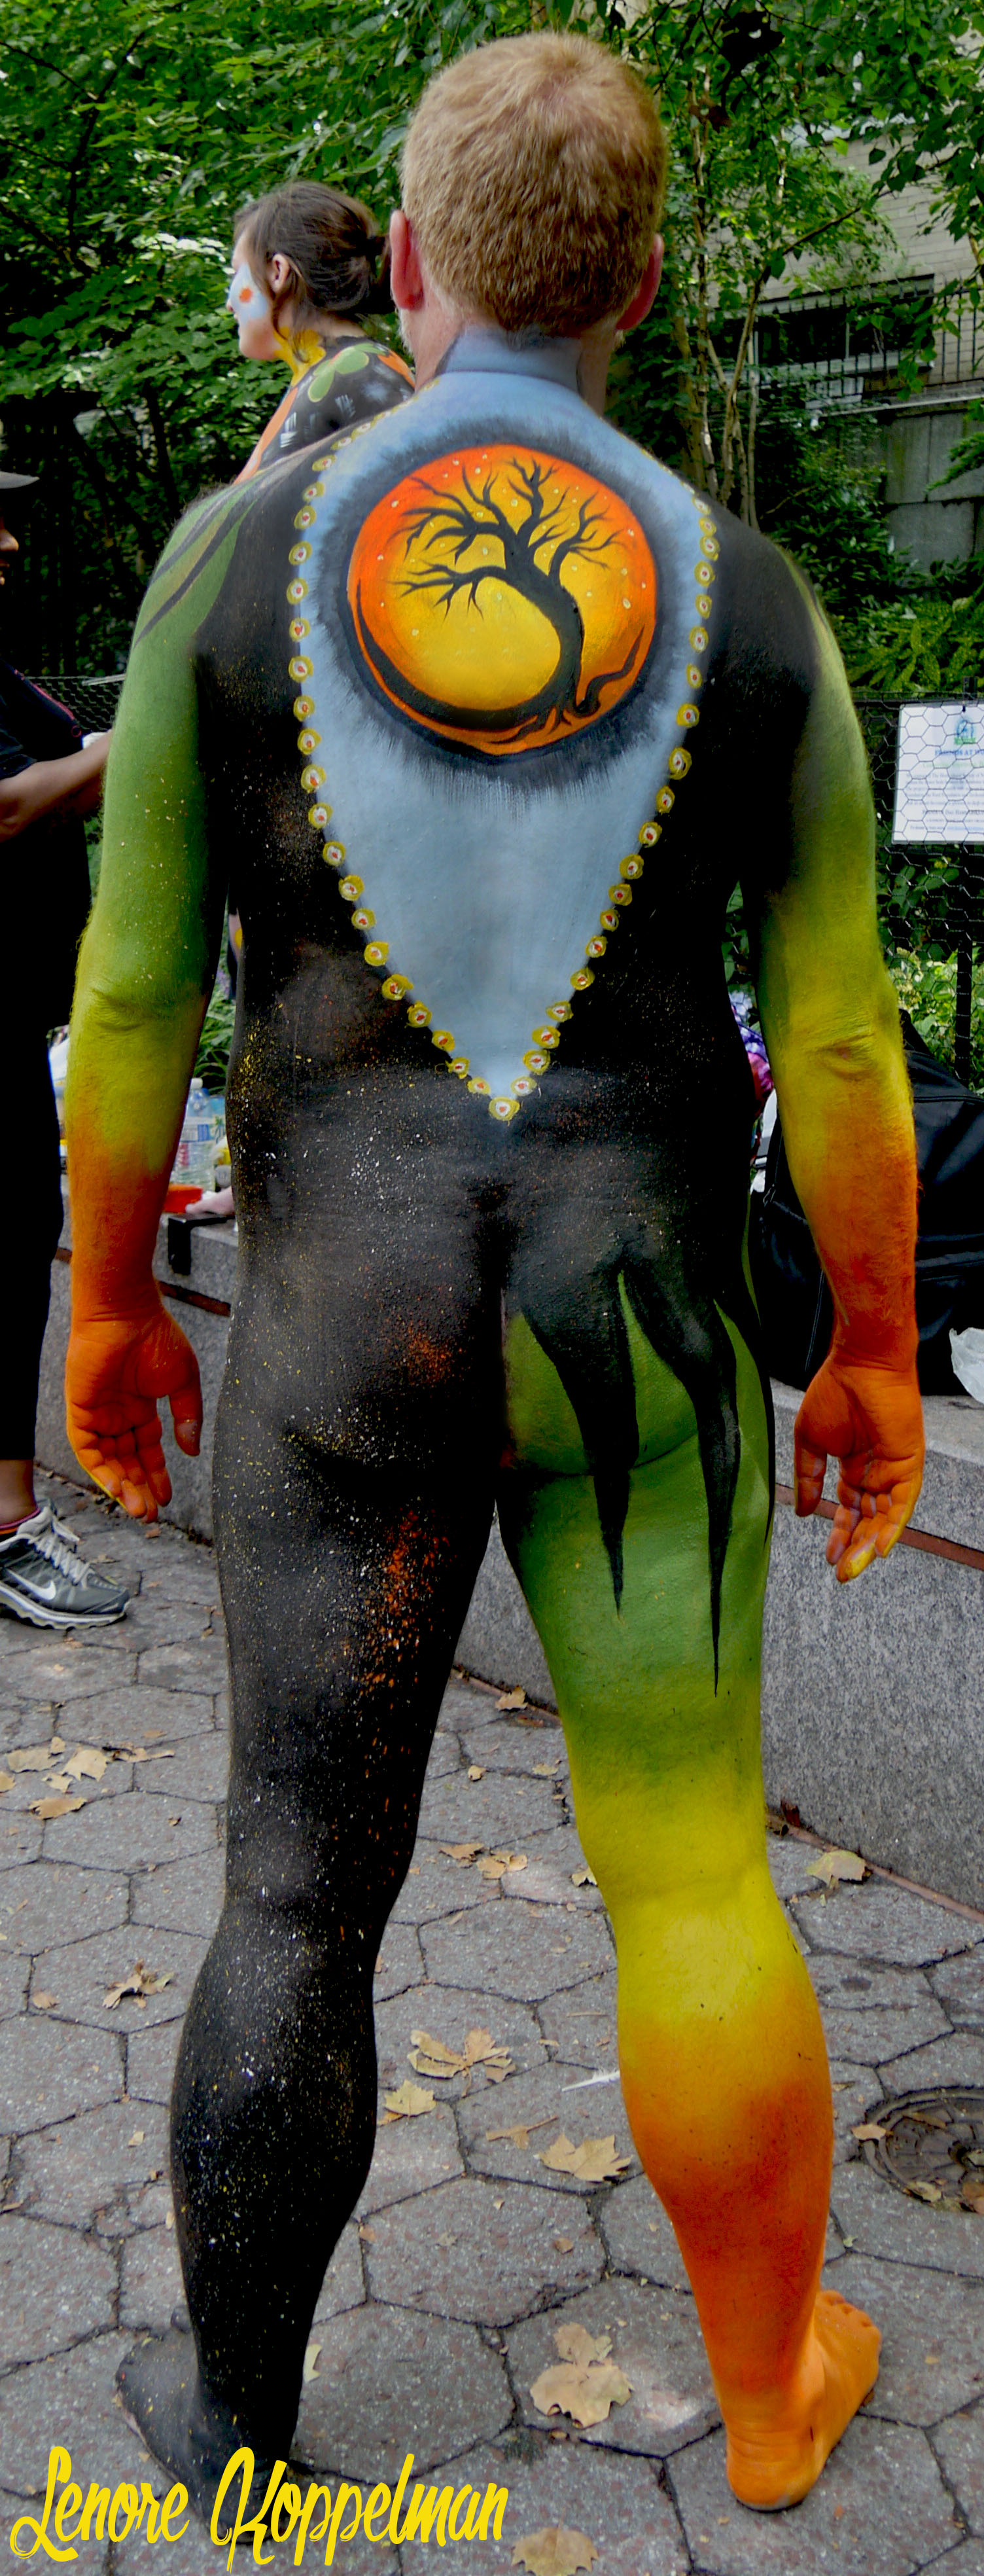 NYC body painting day model 1 back.jpg